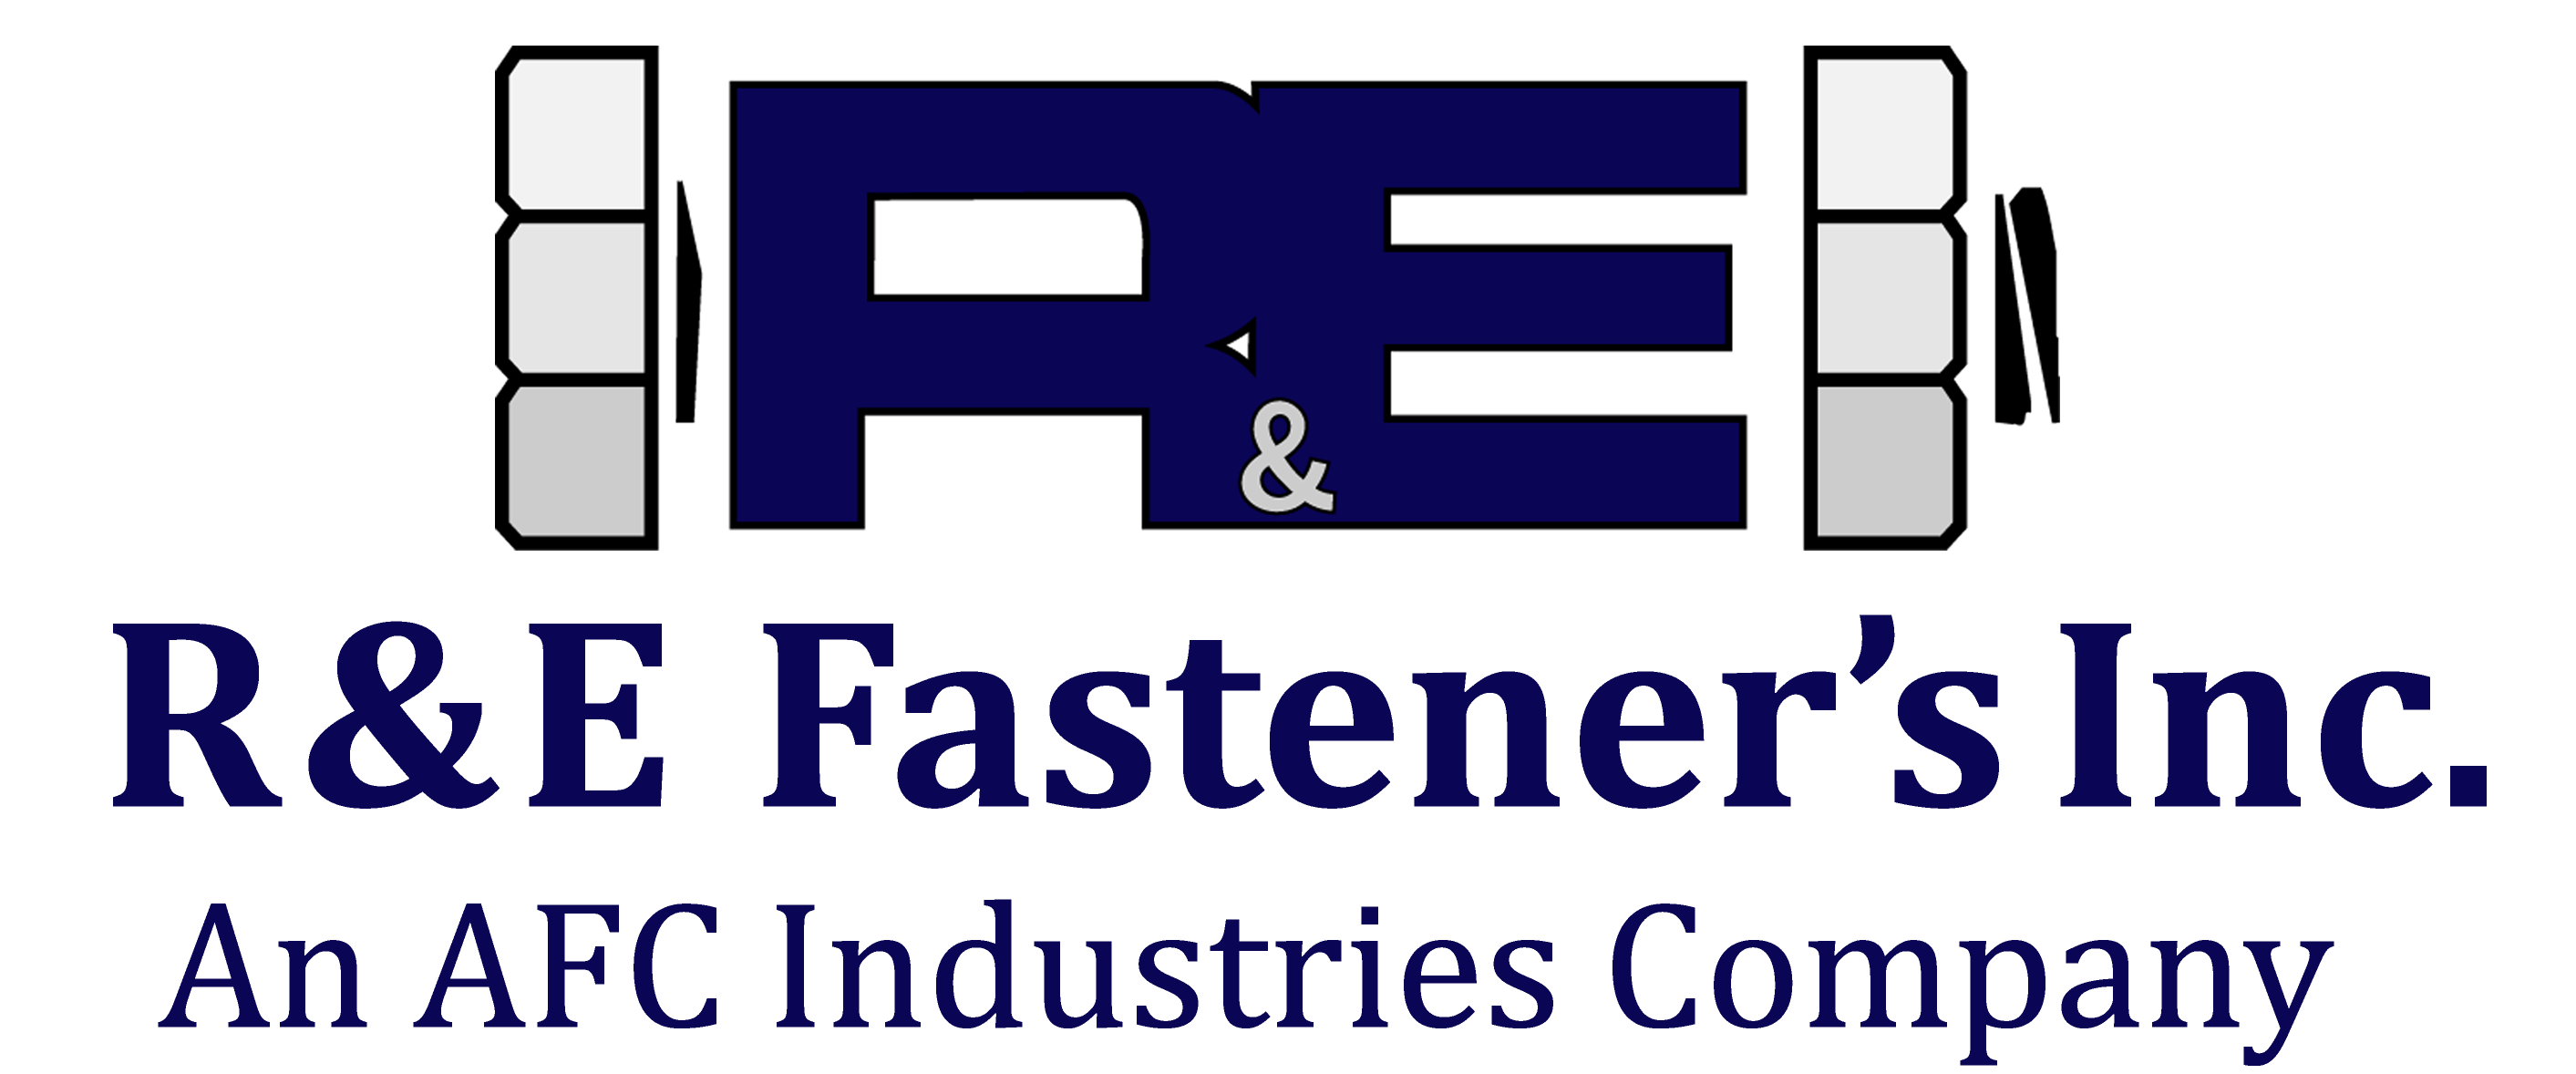 R & E Fasteners, Inc. - an AFC Industries Company